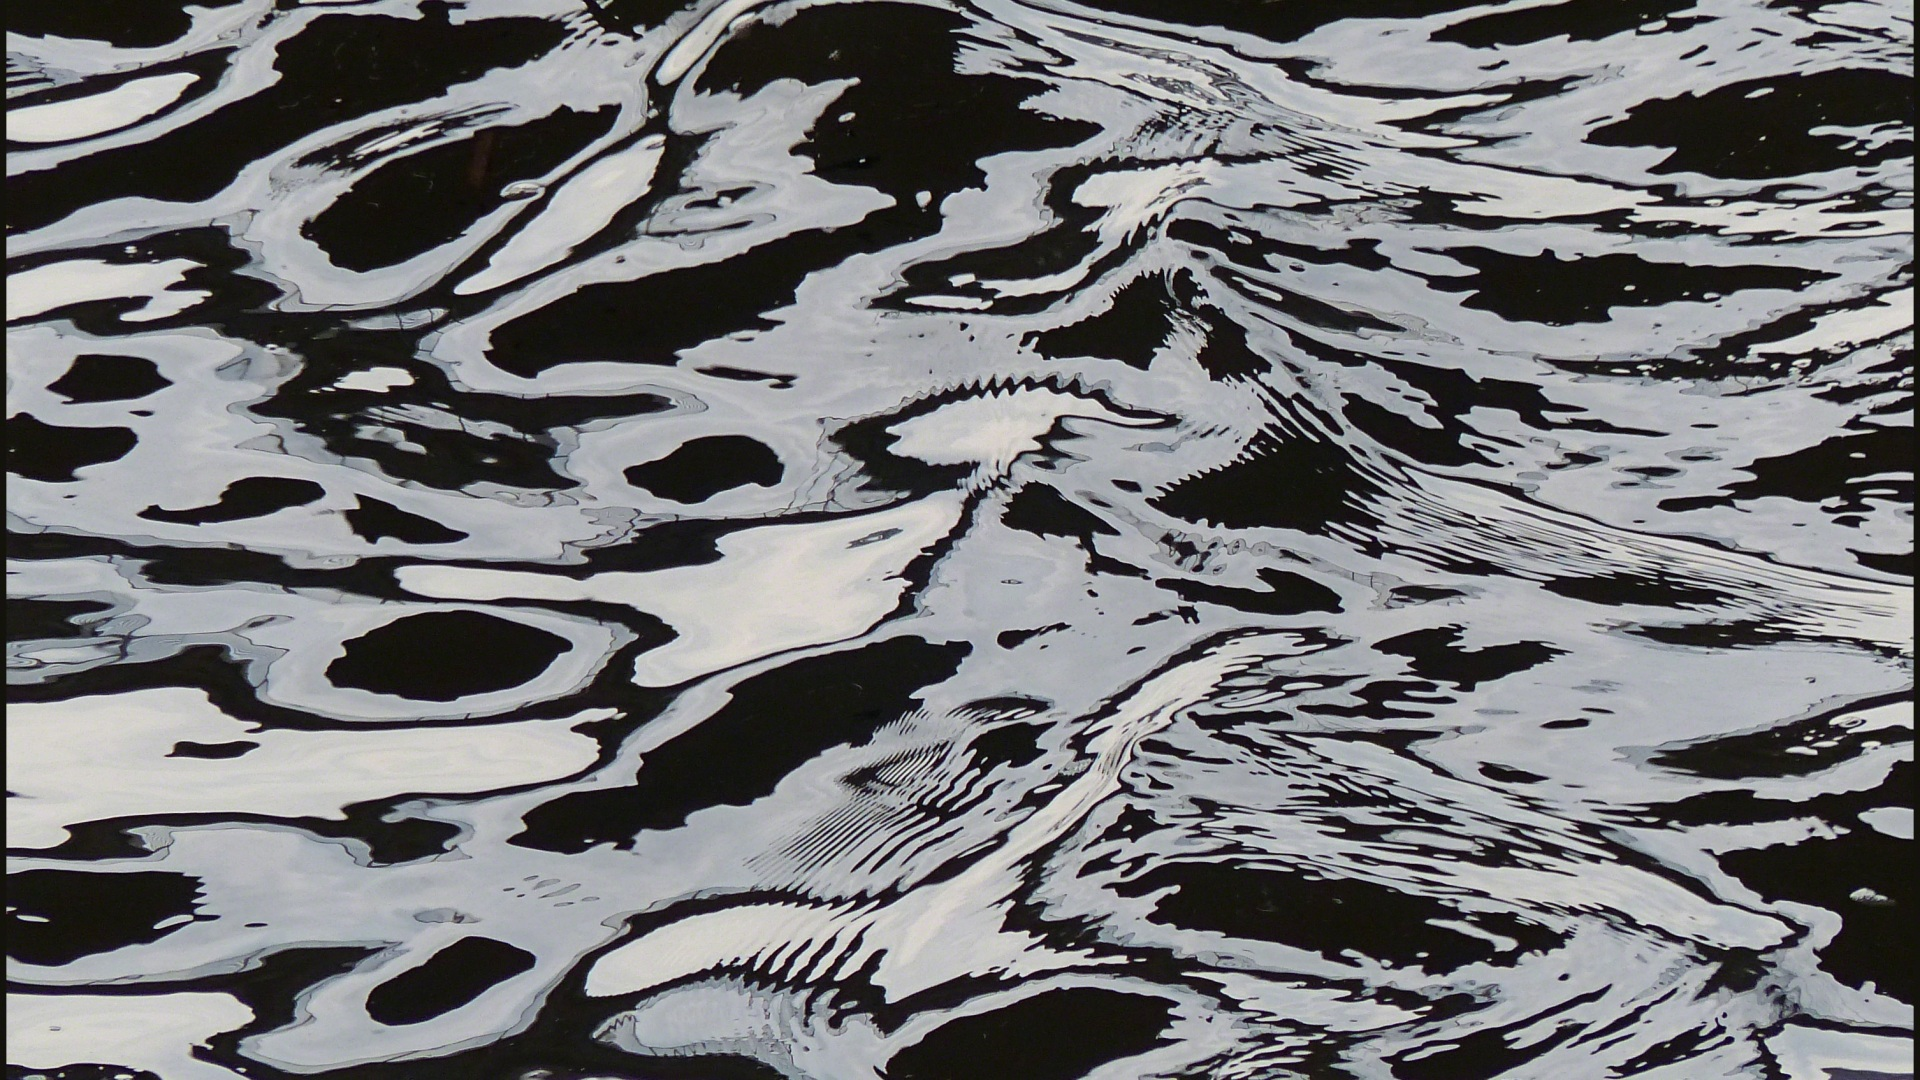 Natural patterns on flowing water